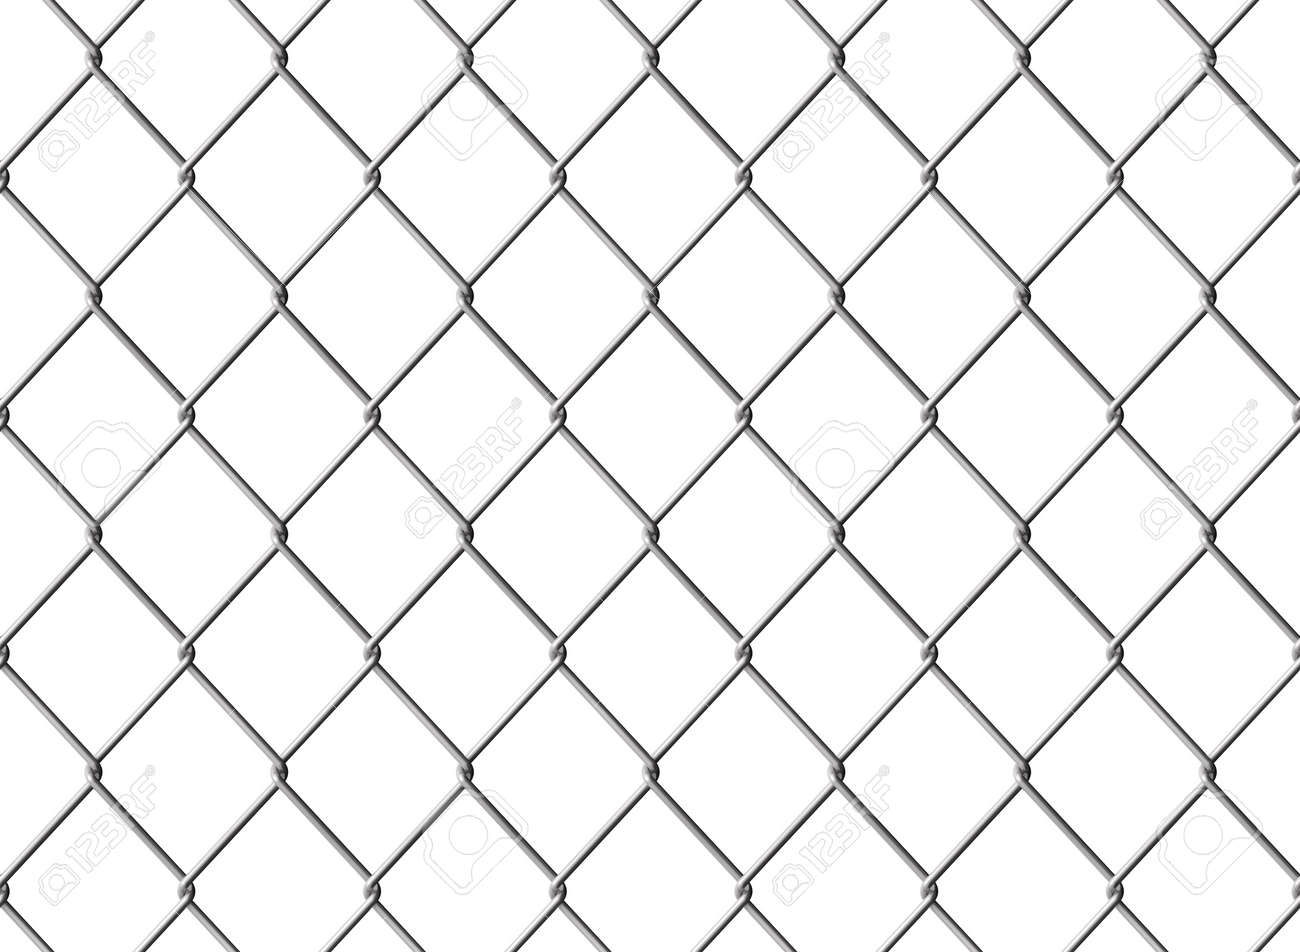 Isolated Chainlink Fence Seamless Texture Computer Generated